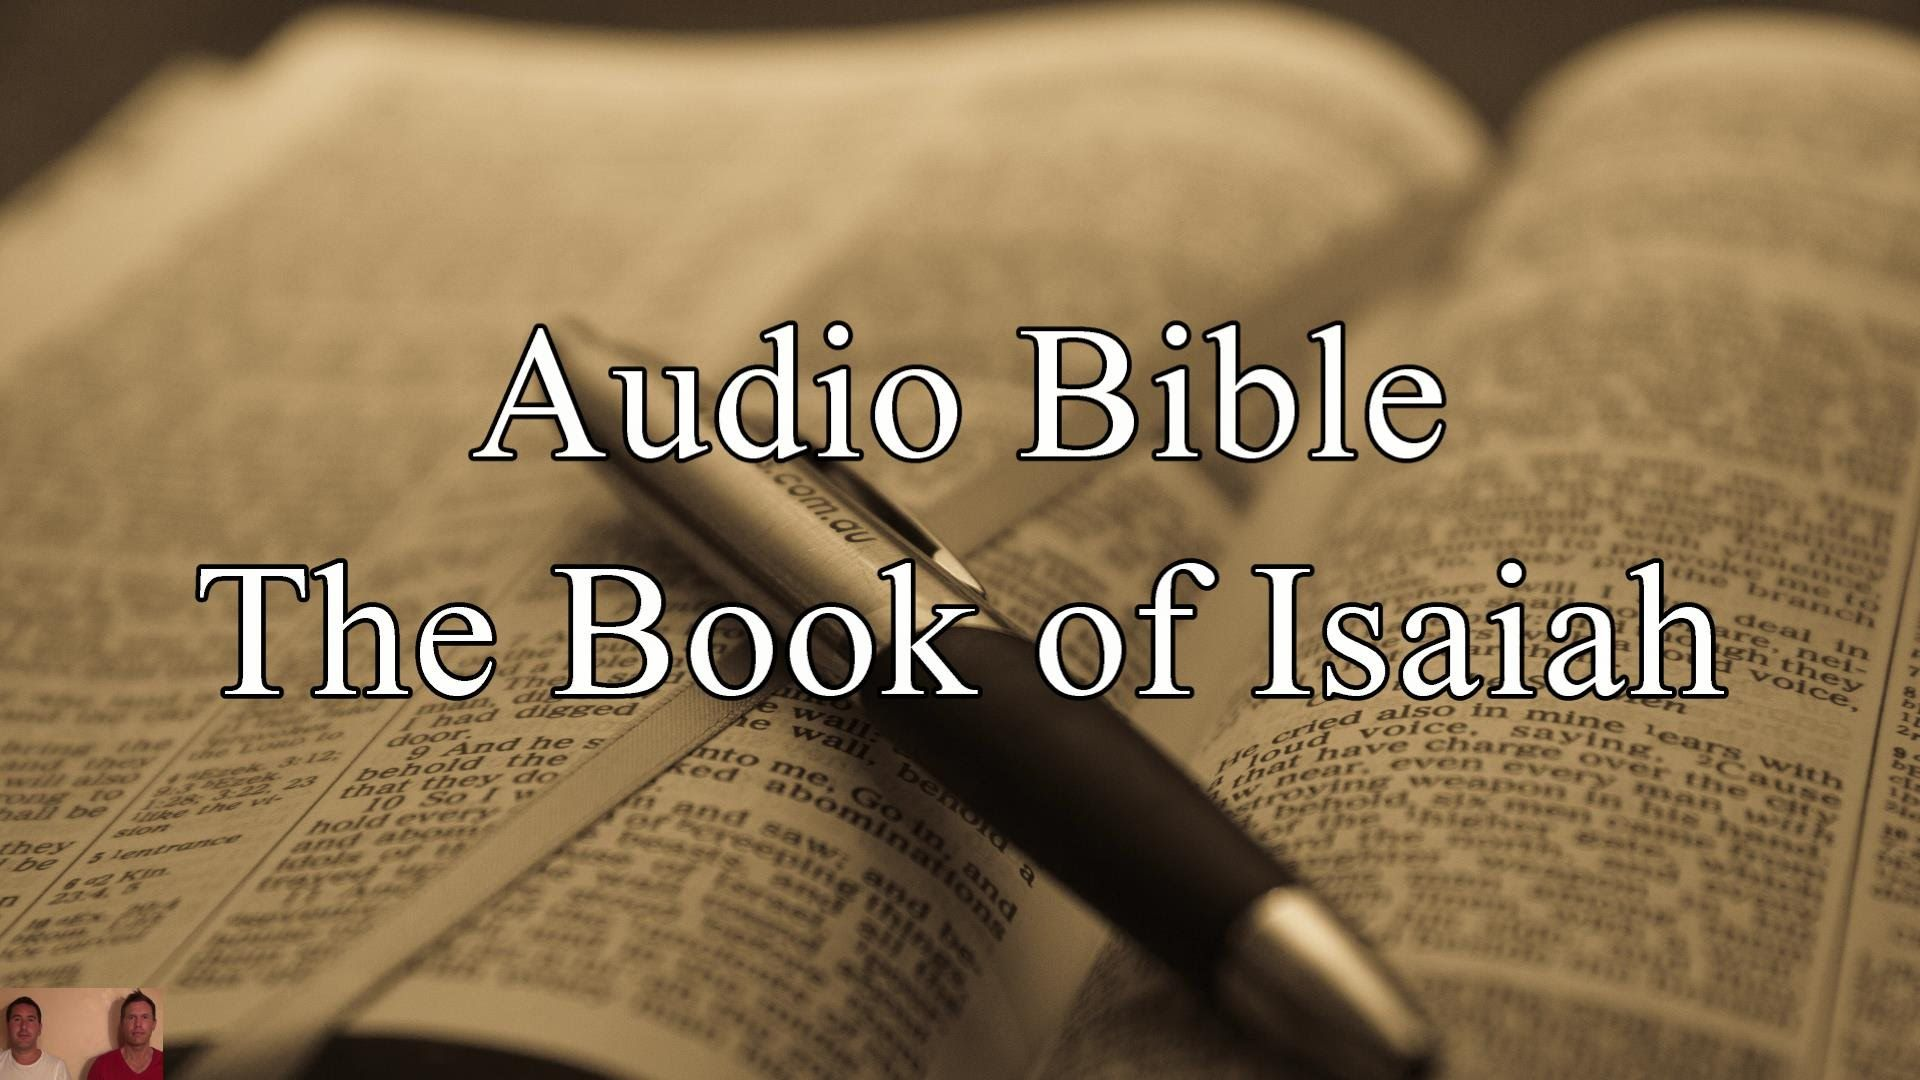 The Book of Isaiah - KJV Audio Holy Bible - High Quality and Best